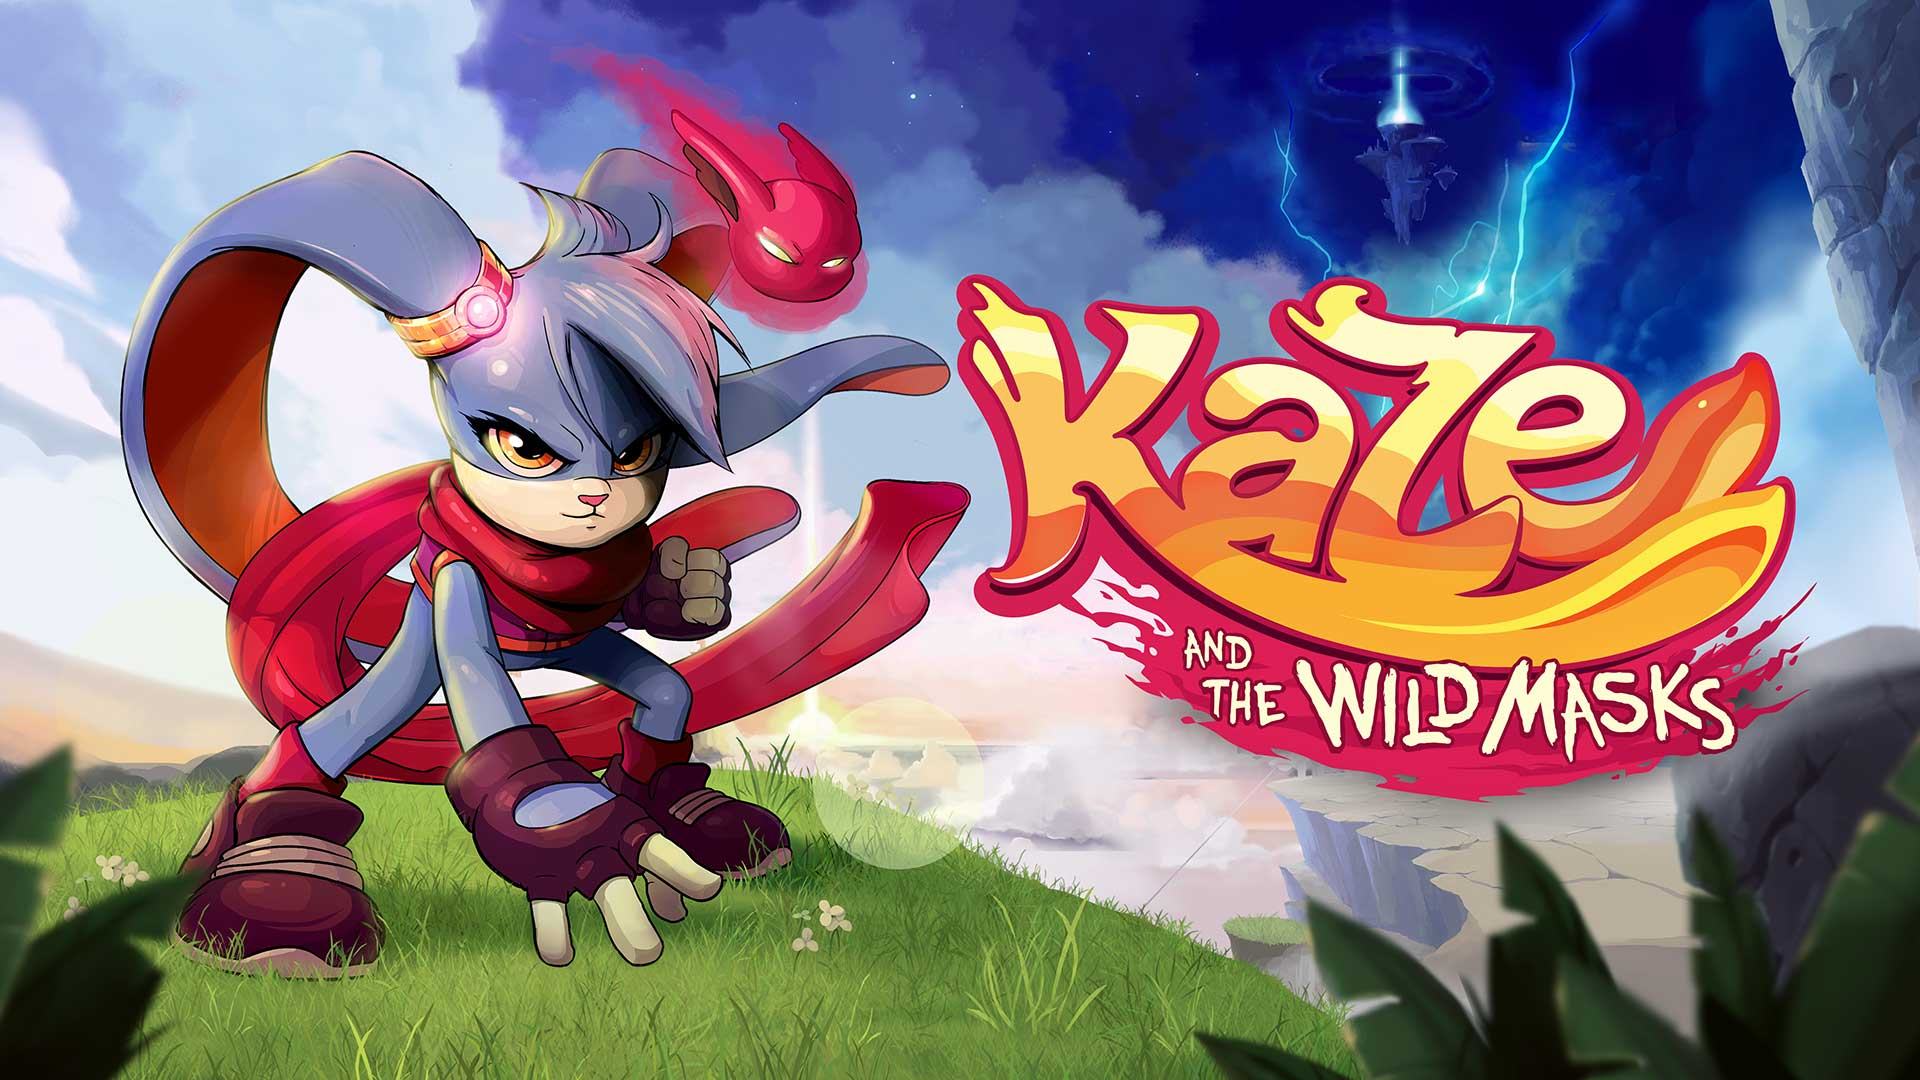 kaze and the wild masks